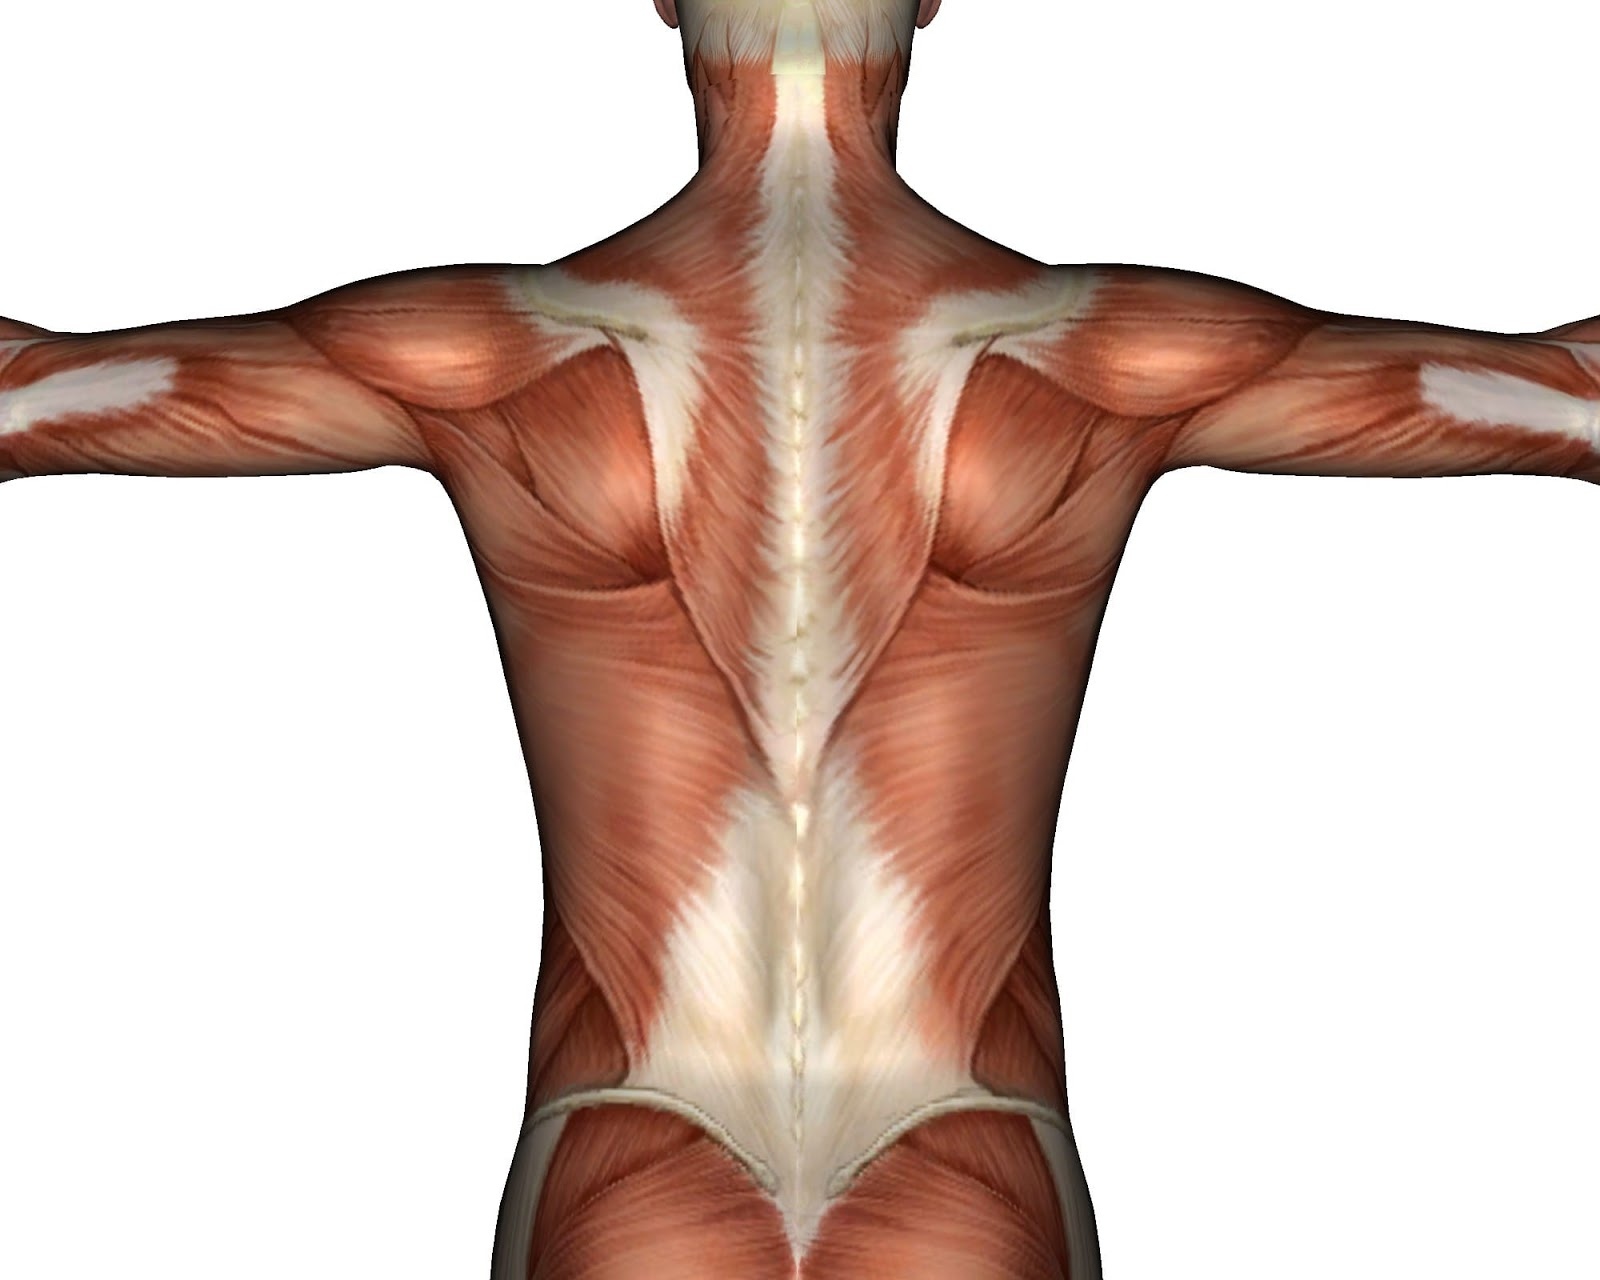 medium resolution of therefore it is not uncommon for pain to occur in the middle or lower back regions stemming from thoracolumbar fascia injury